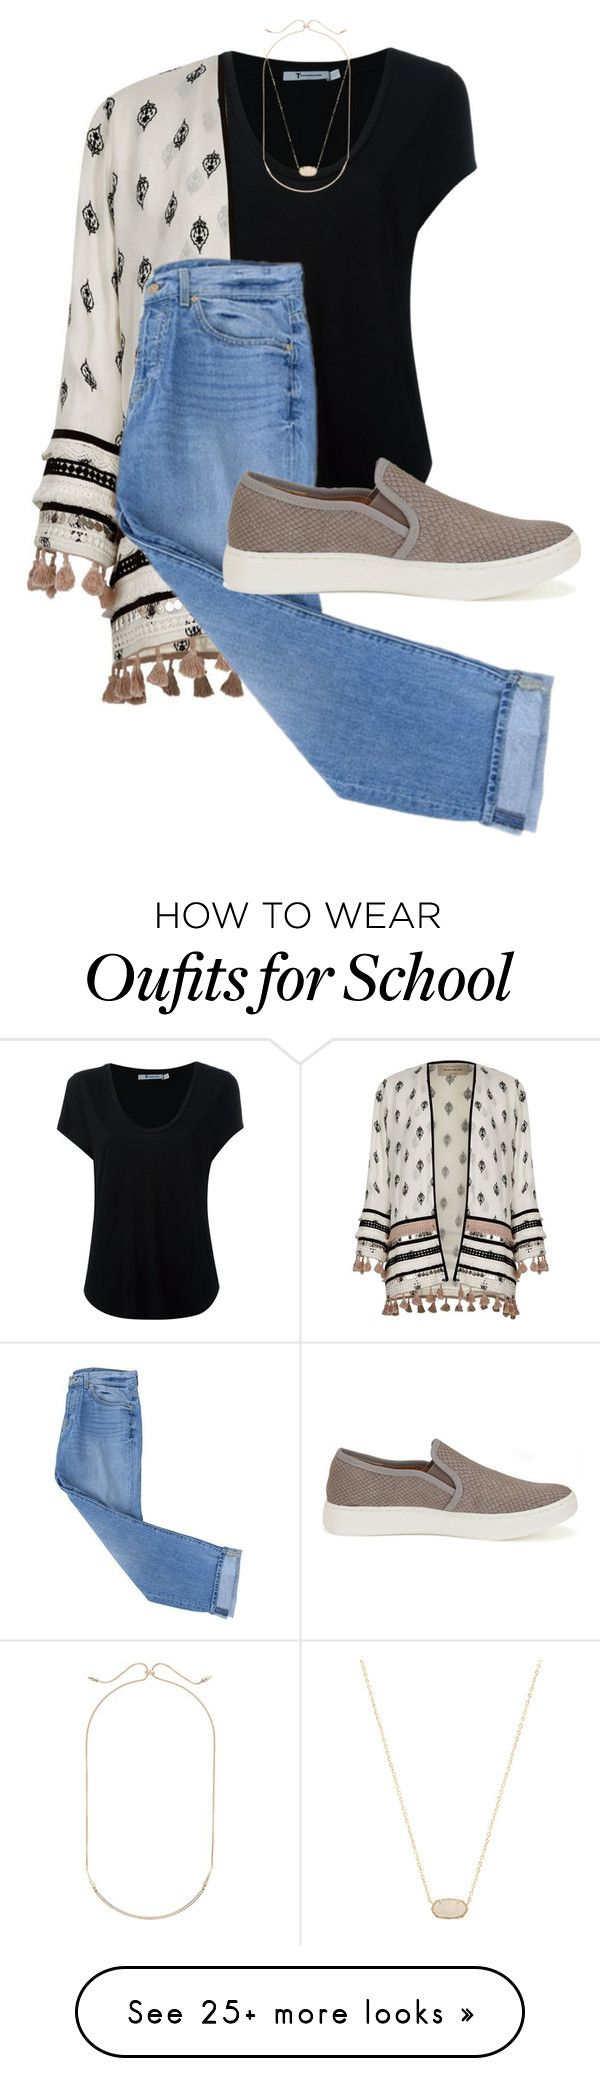 """back to school contest:)"" by libbyford on Polyvore featuring Alexander Wang, River Island, 7 For All Mankind, Söfft and Kendra Scott"